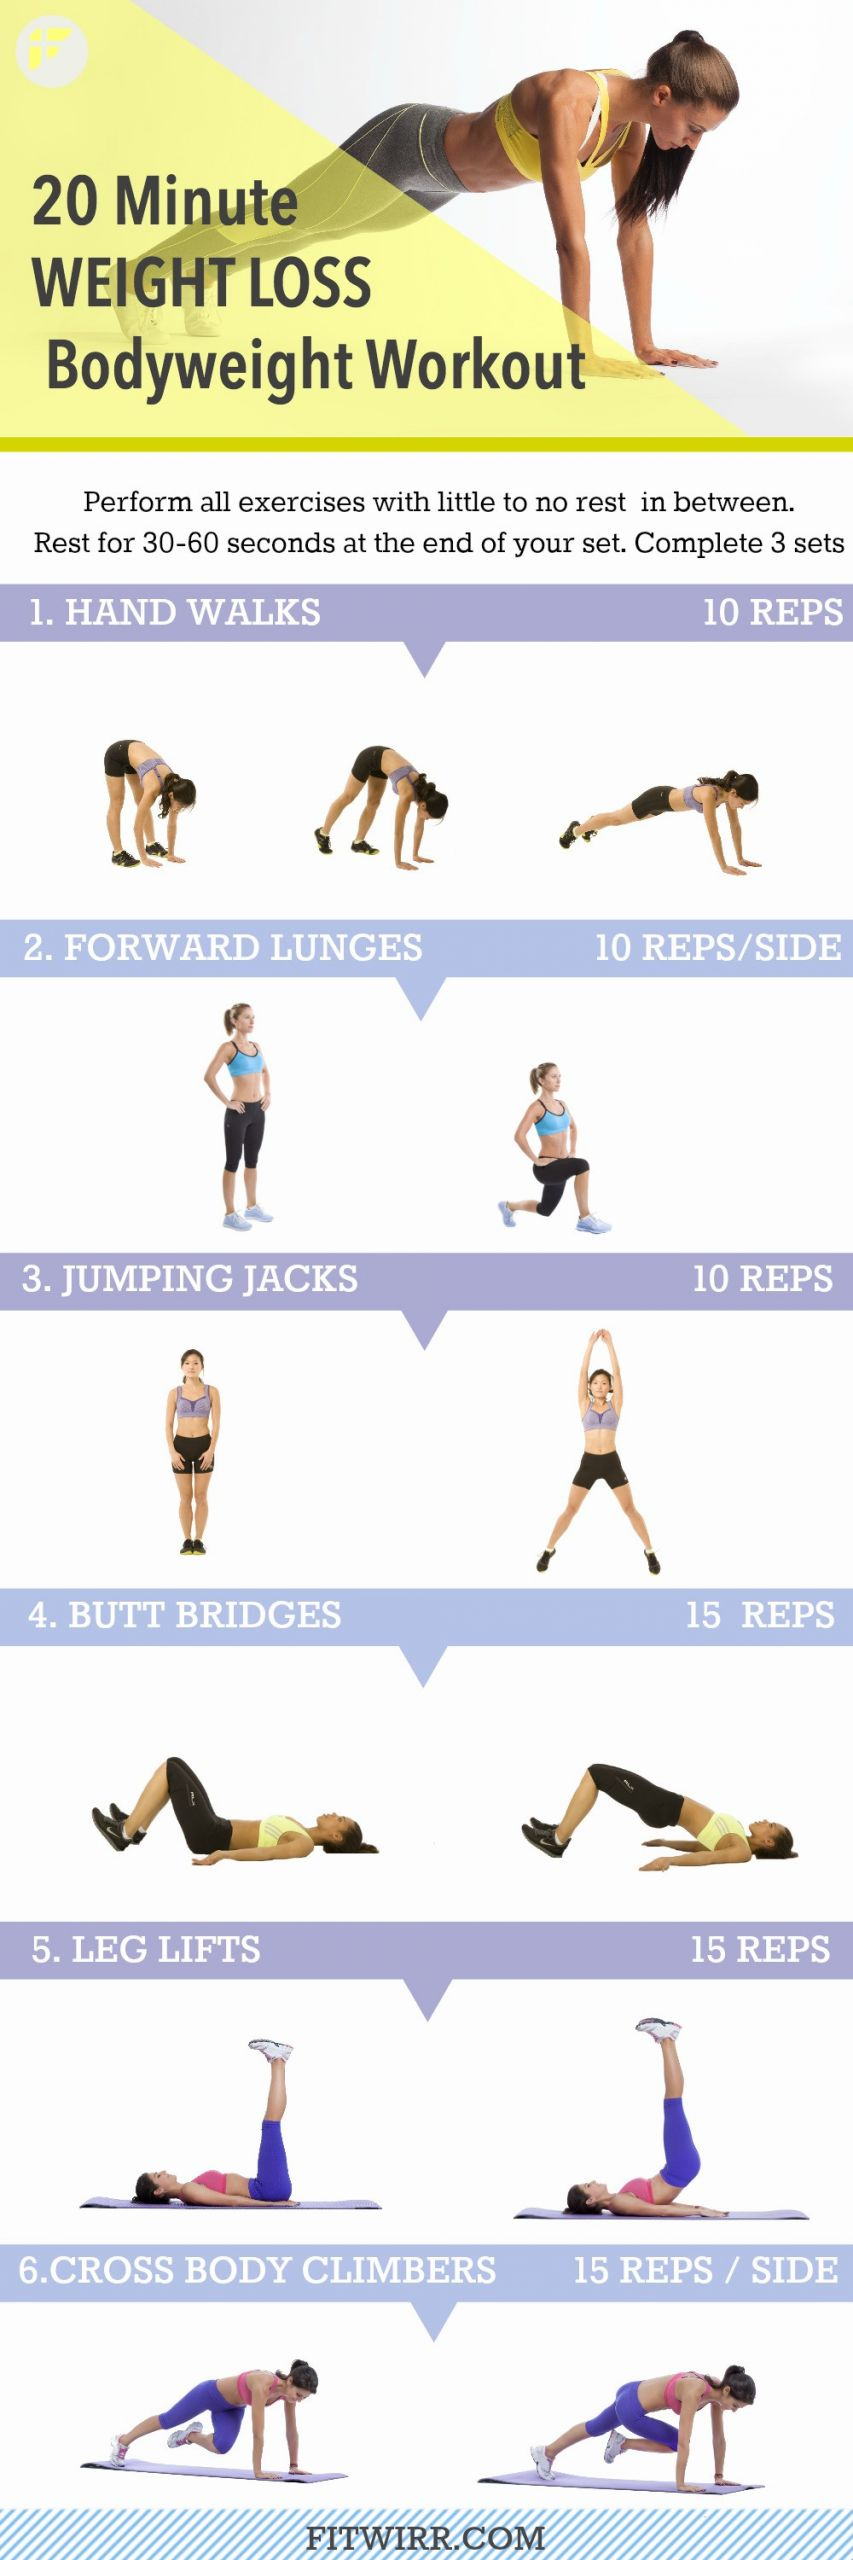 Weight Loss Exercises At Home For Women  The Absolute Best Workout to Lose Weight Burn Fat and